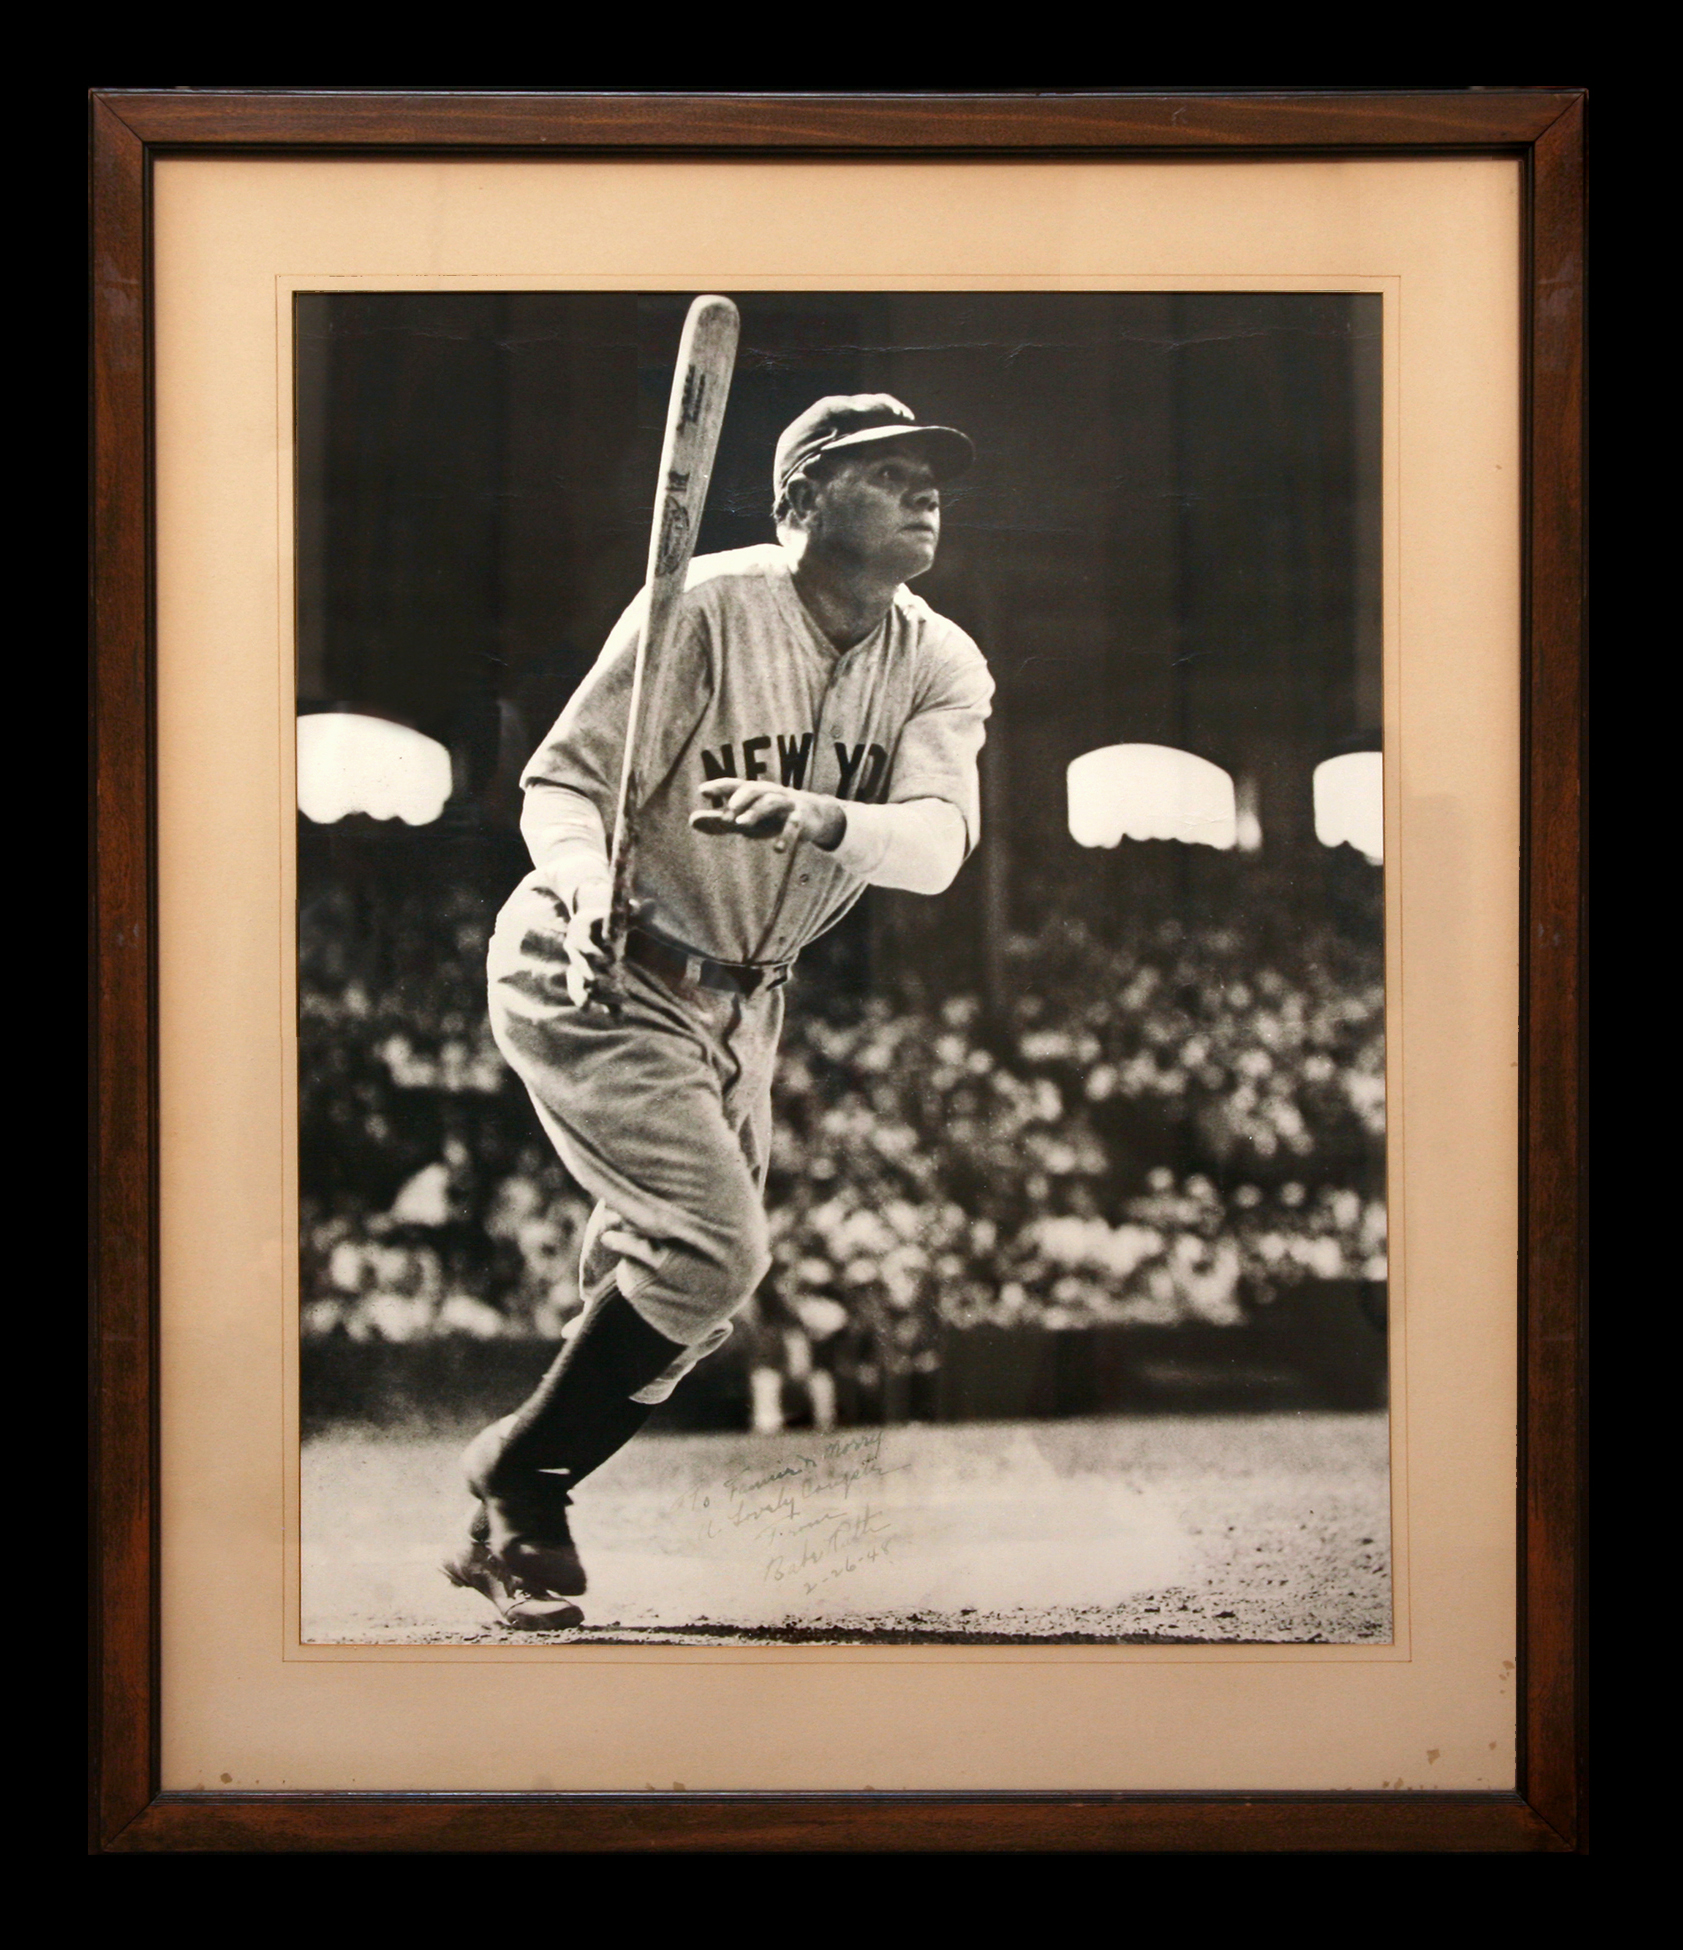 Large Signed Babe Ruth Photo